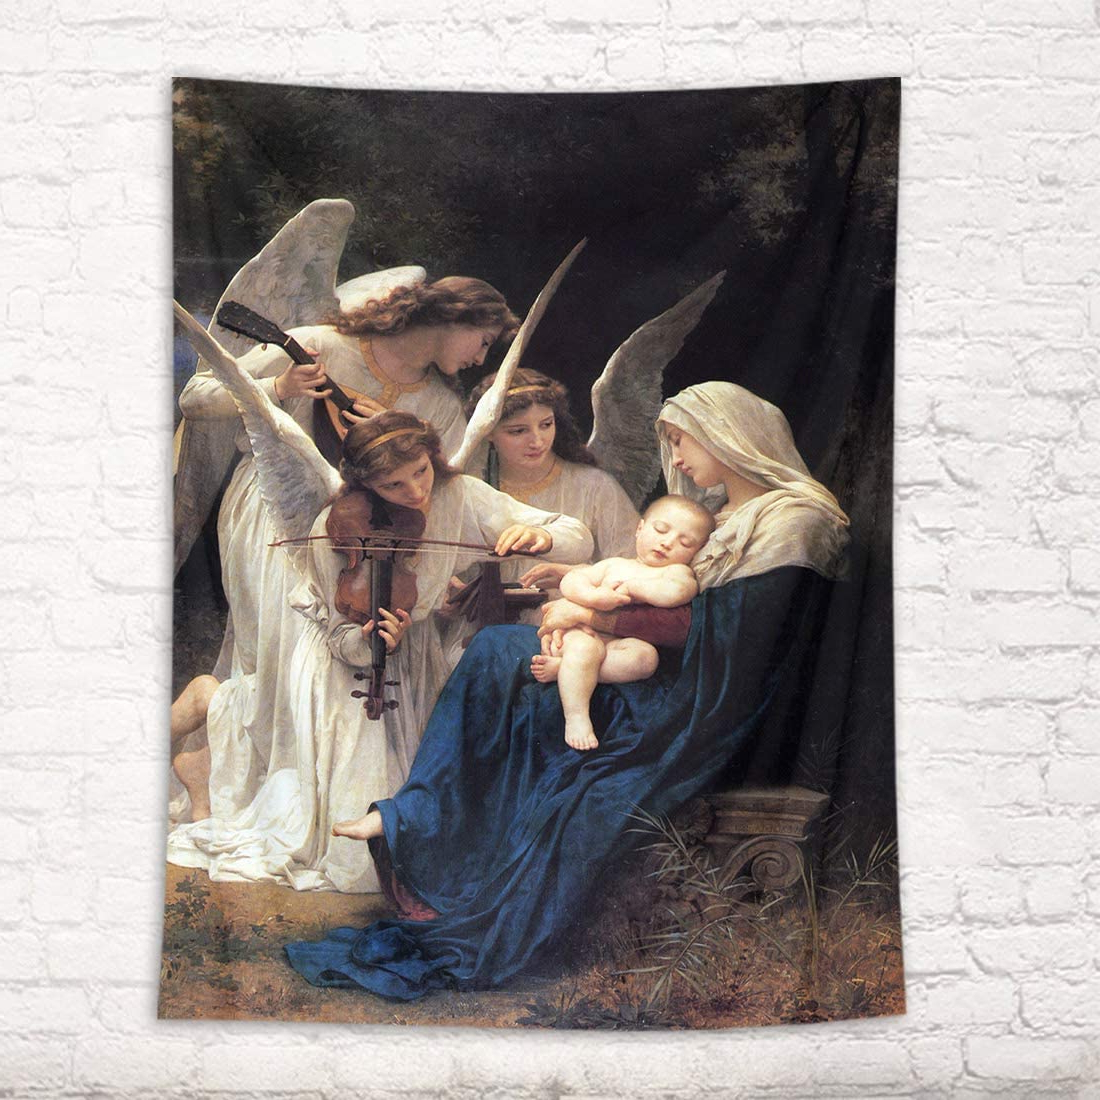 Famous Blended Fabric Blessings Of Christmas Tapestries Inside Hvest Christian Tapestry Wall Hanging Angels Play The Violin Wall Tapestry Sleepy Baby In Blessed Mary Arms Tapestry Christmas Tapestry Wall Hanging (View 7 of 20)